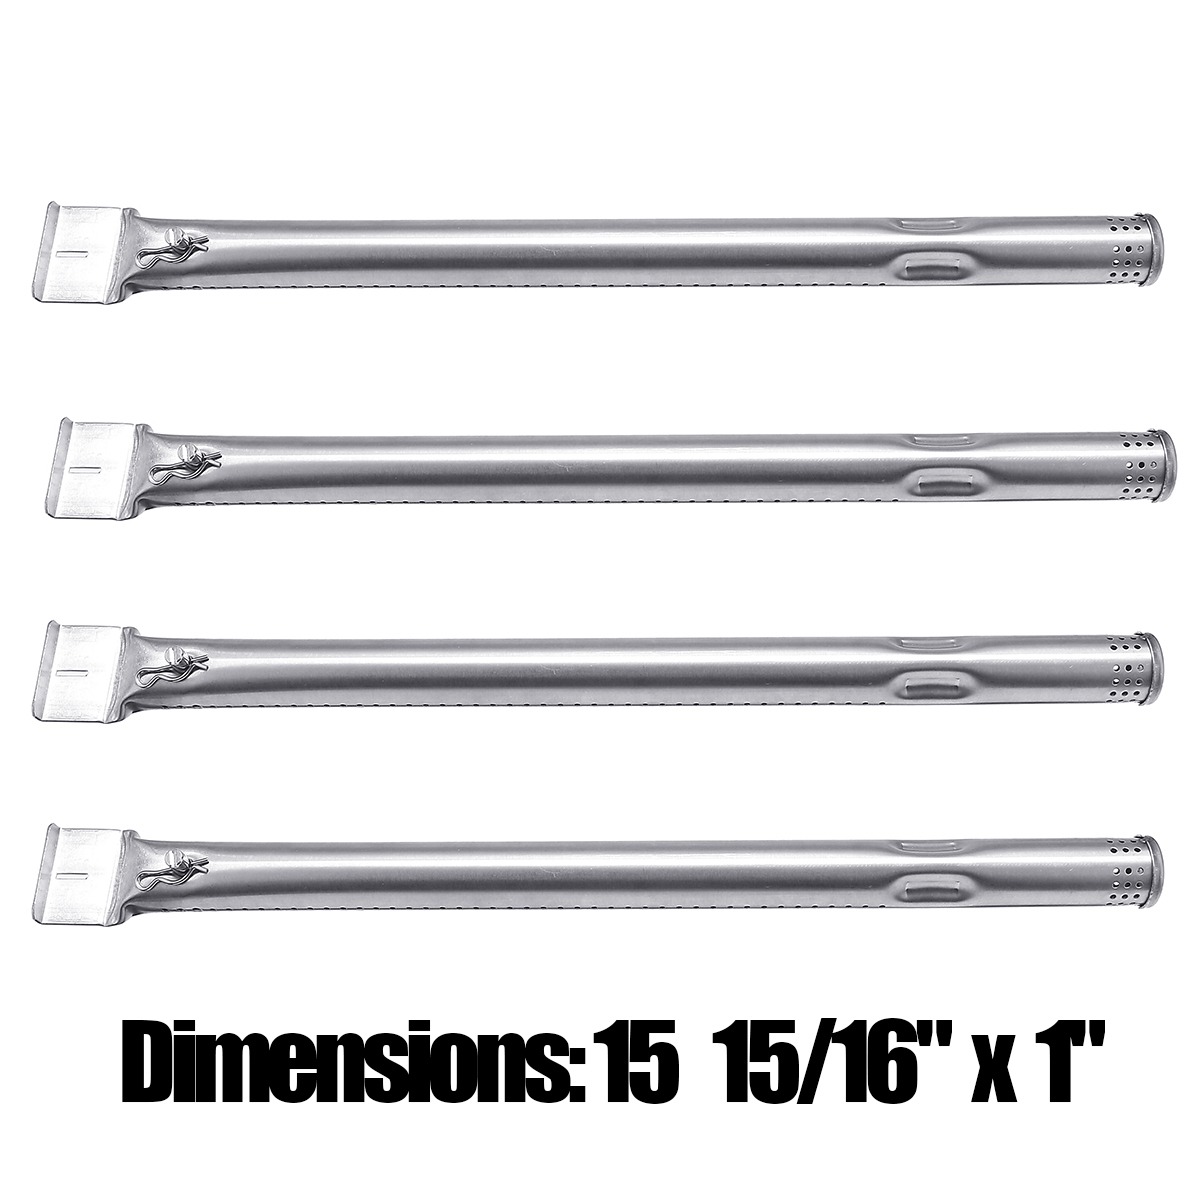 15 inch 4pcs/pk Adjust Stainless Steel Tube Burners Barbecue Parts Replacement For Most Gas Grill Models Outdoor BBQ15 inch 4pcs/pk Adjust Stainless Steel Tube Burners Barbecue Parts Replacement For Most Gas Grill Models Outdoor BBQ